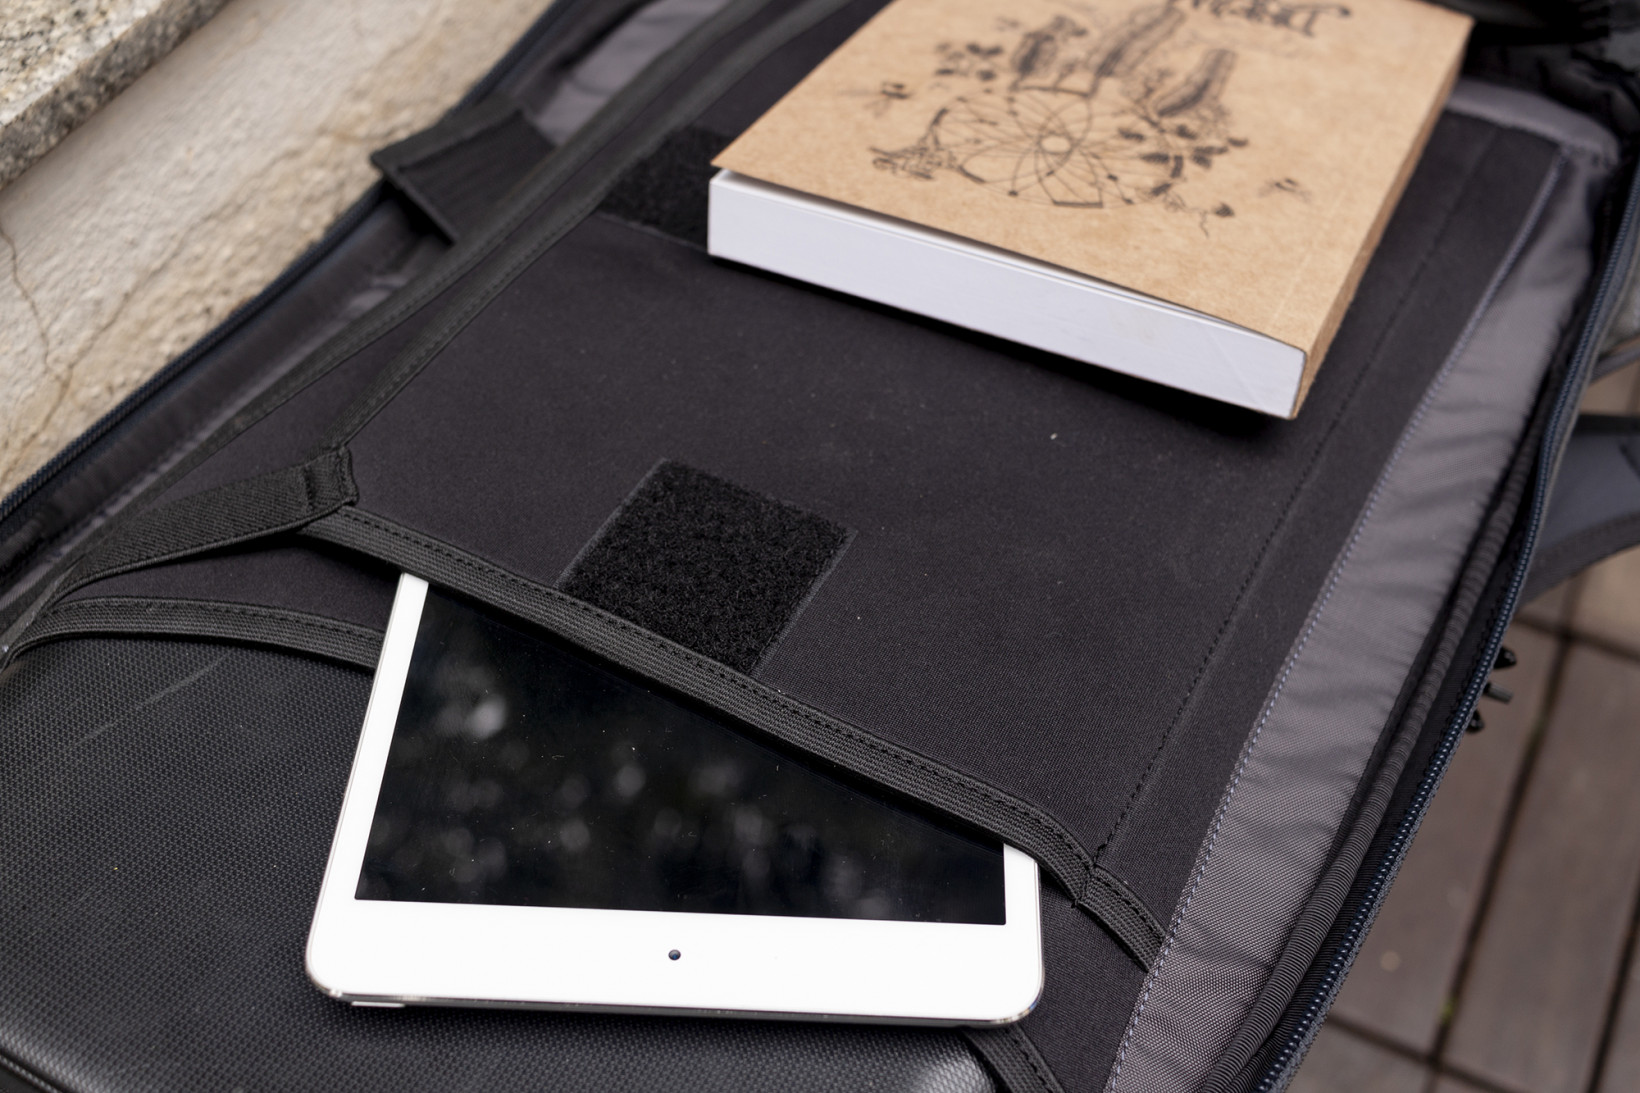 The Minaal Daily has two shock-proof sections for your laptop and tablet